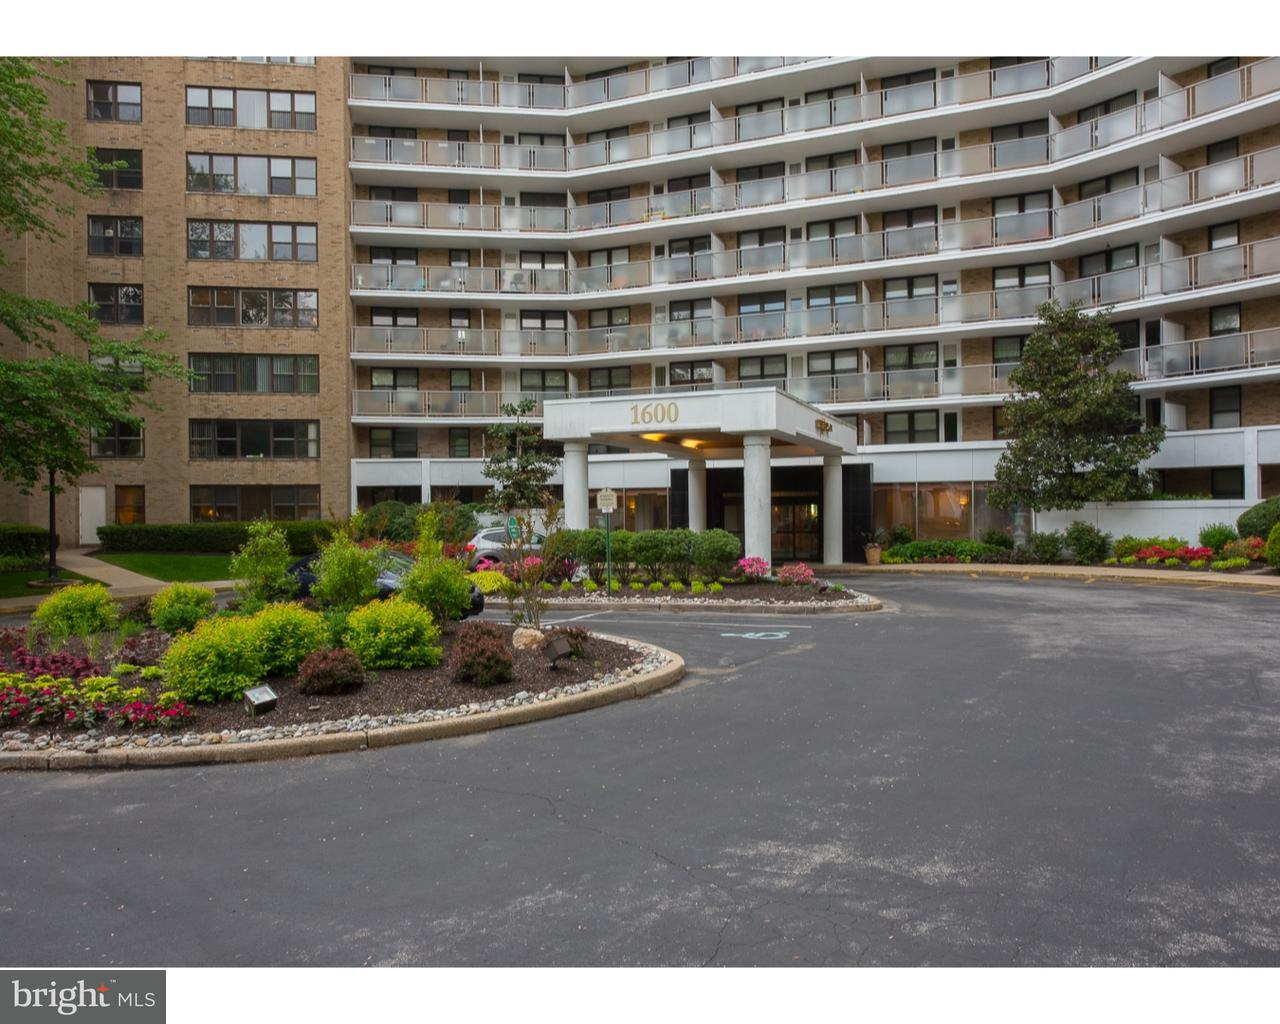 1600 Hagys Ford Road #8G Penn Valley, PA 19072